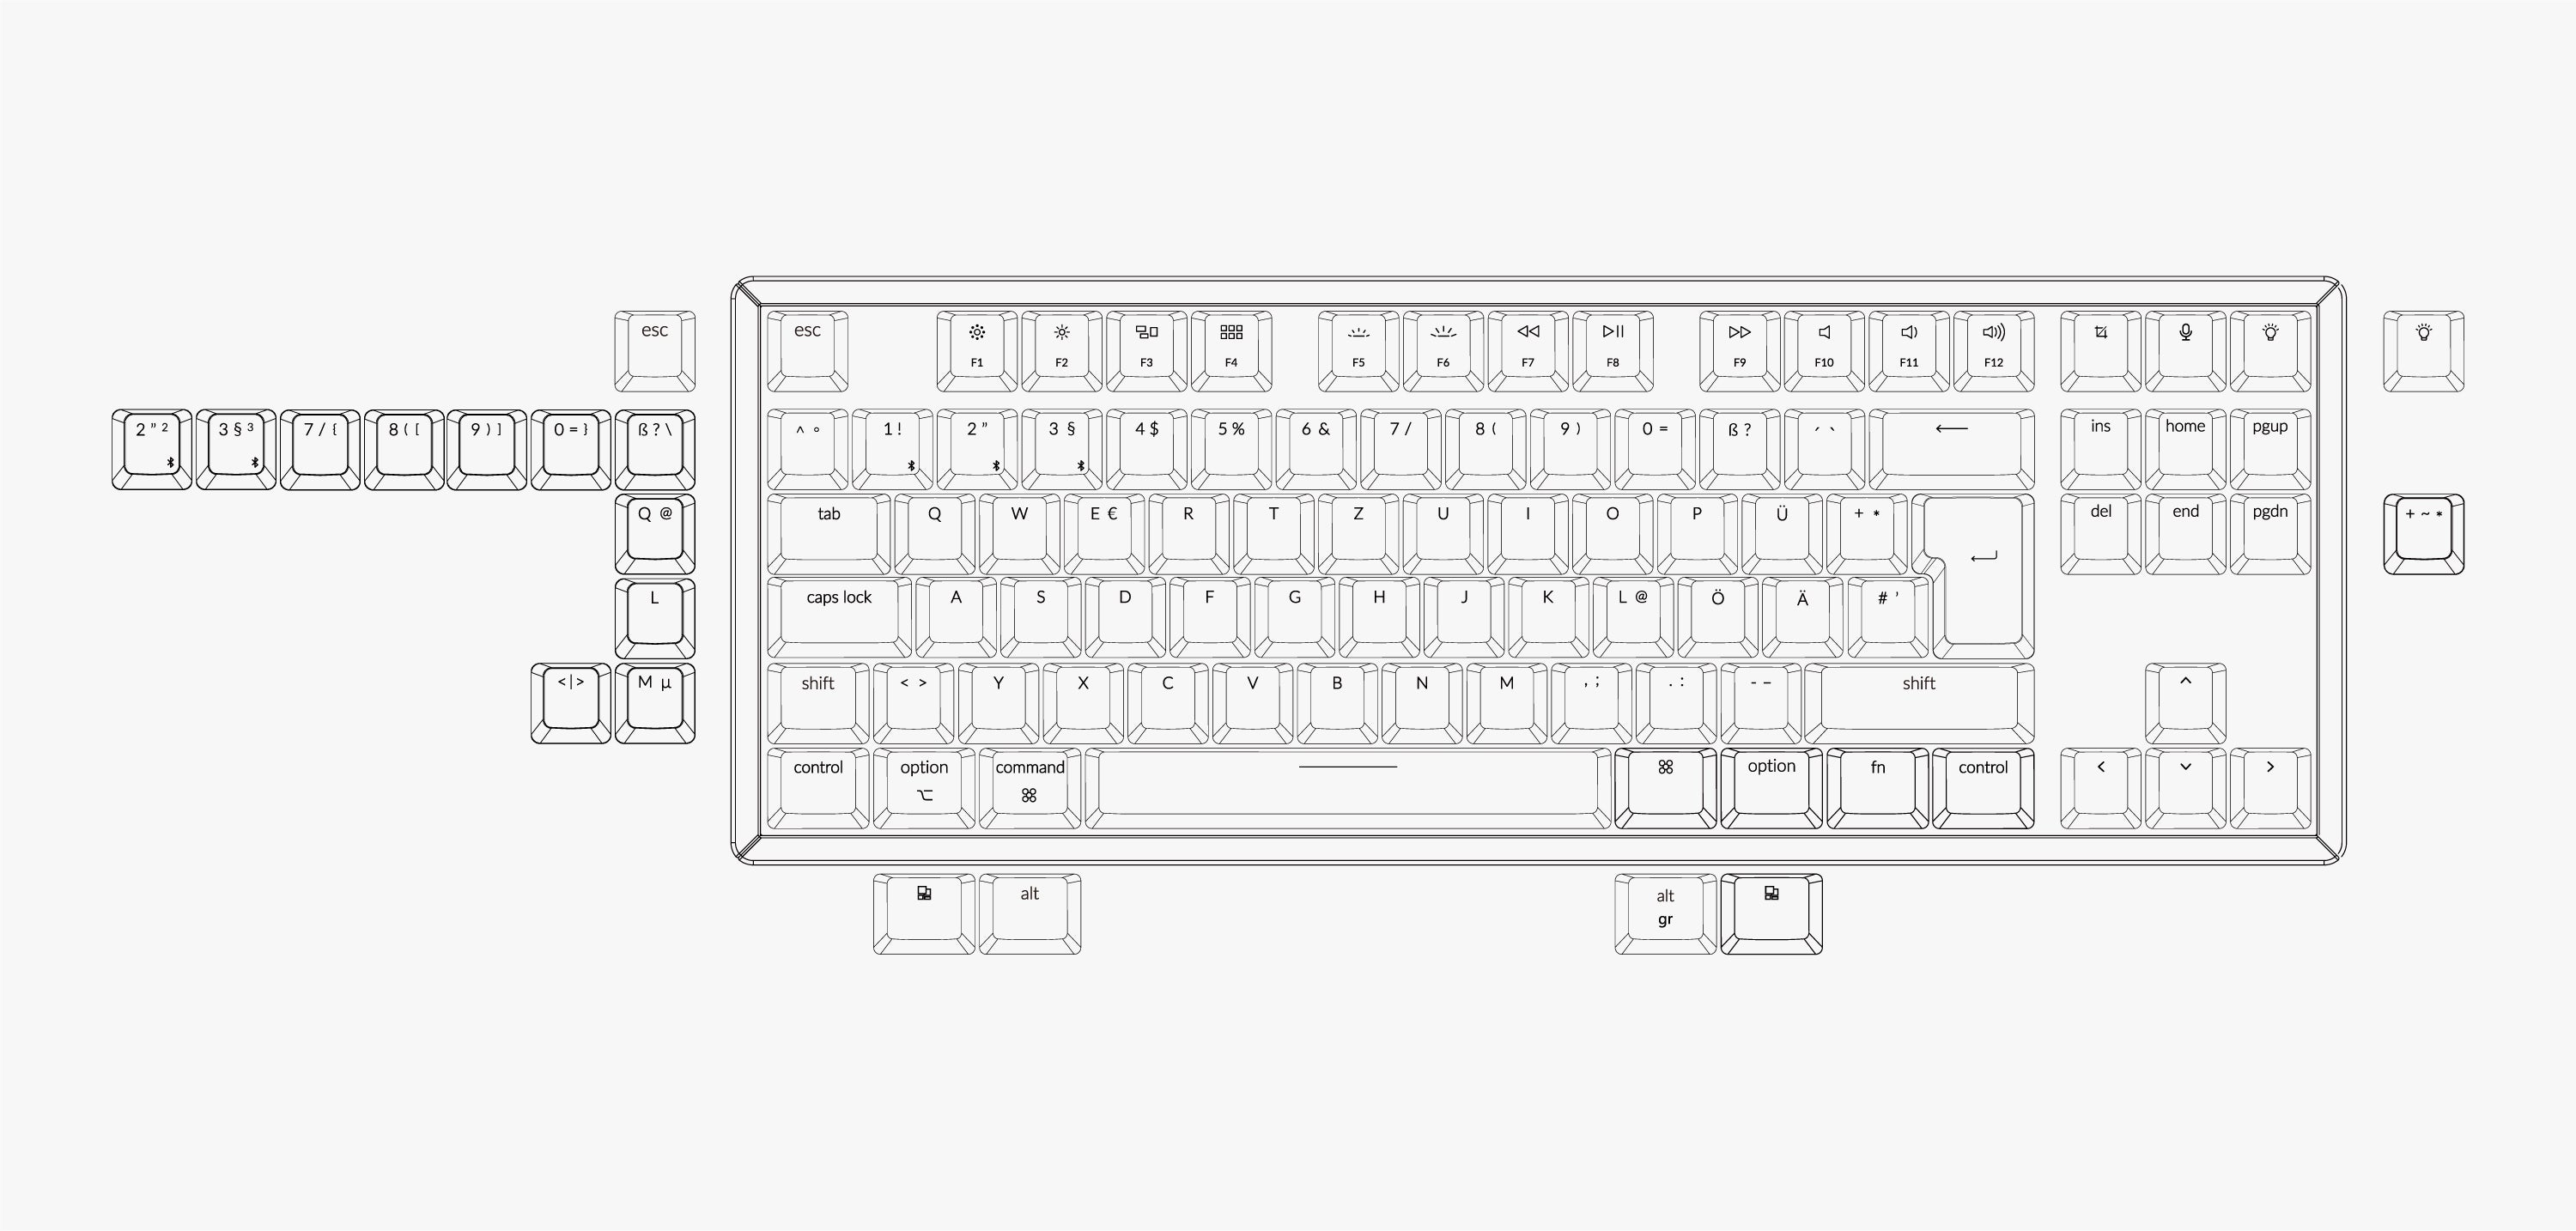 Keychron K8 tenkeyless wireless mechanical keyboard for Mac Windows iOS layout